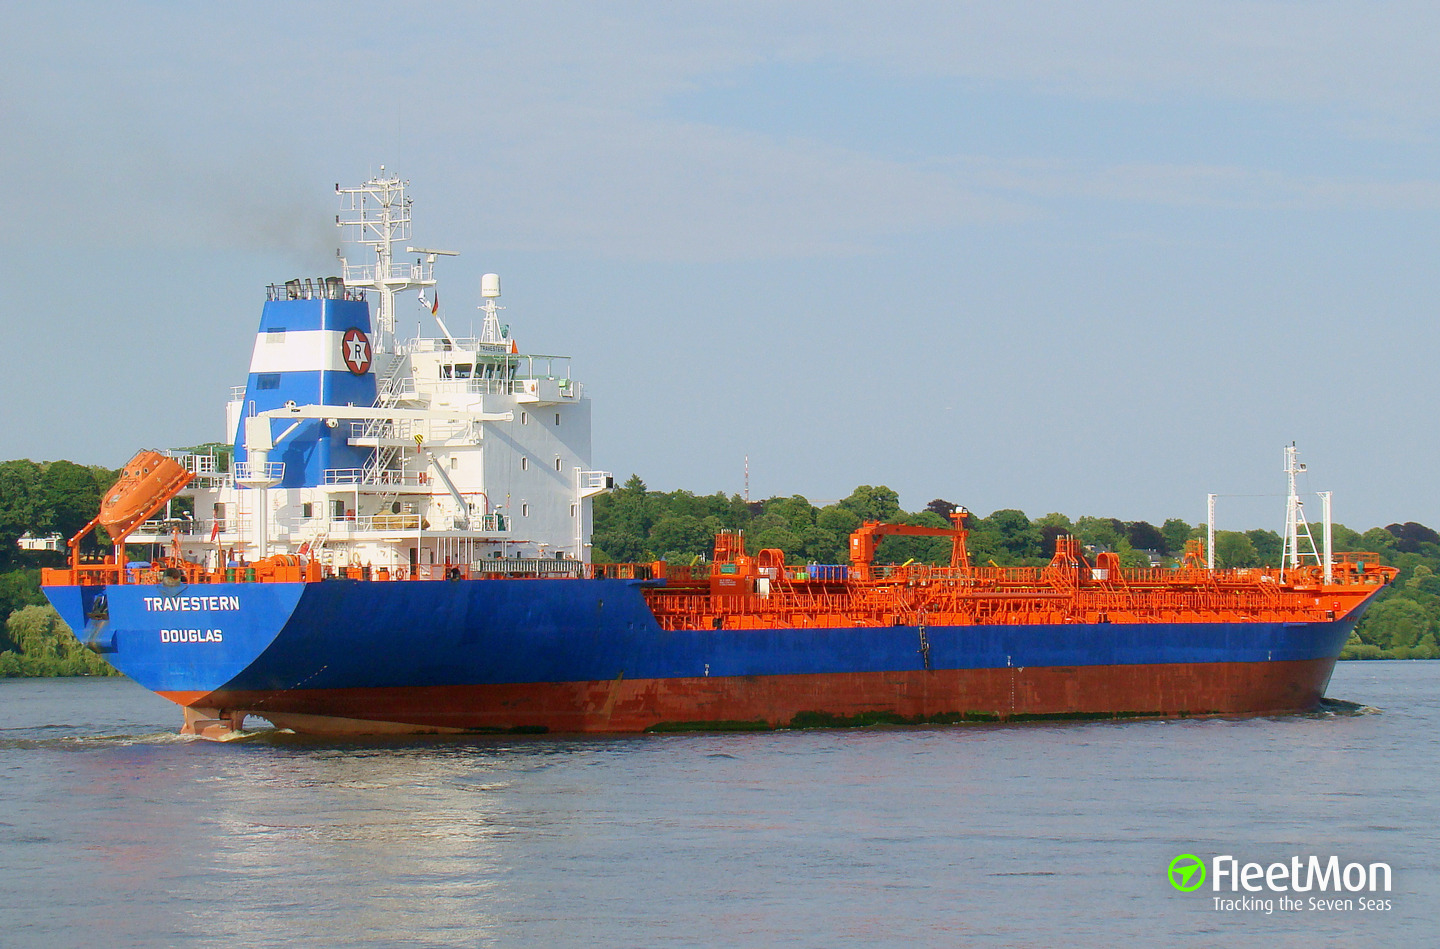 Tanker TRAVESTERN grounding in St. Lawrence